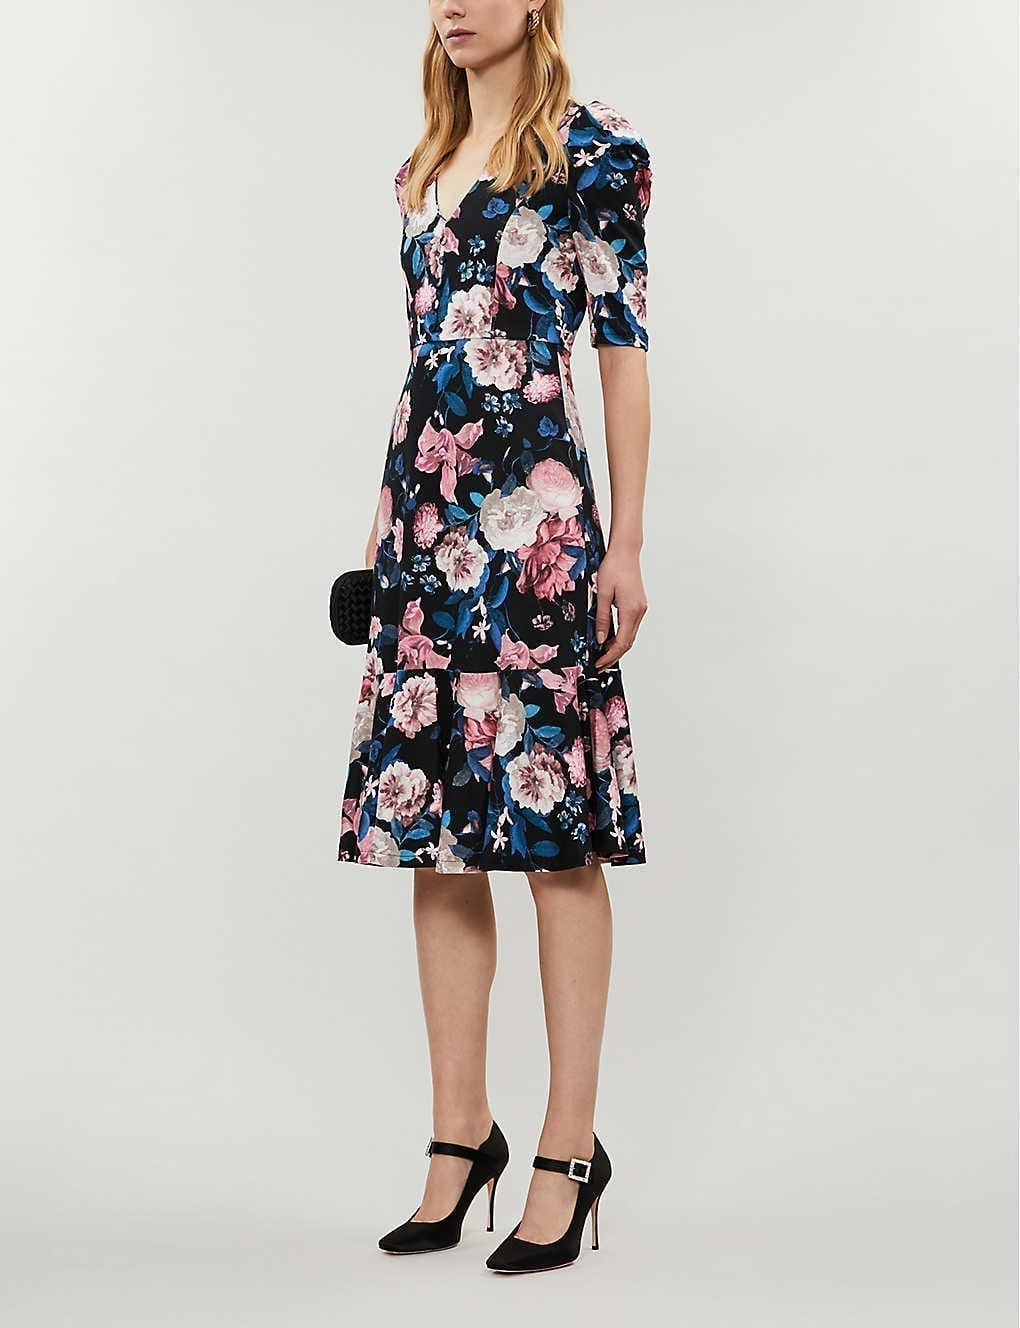 ERDEM Ottavia Puffed-sleeve Floral-print Stretch-jersey Midi Dress